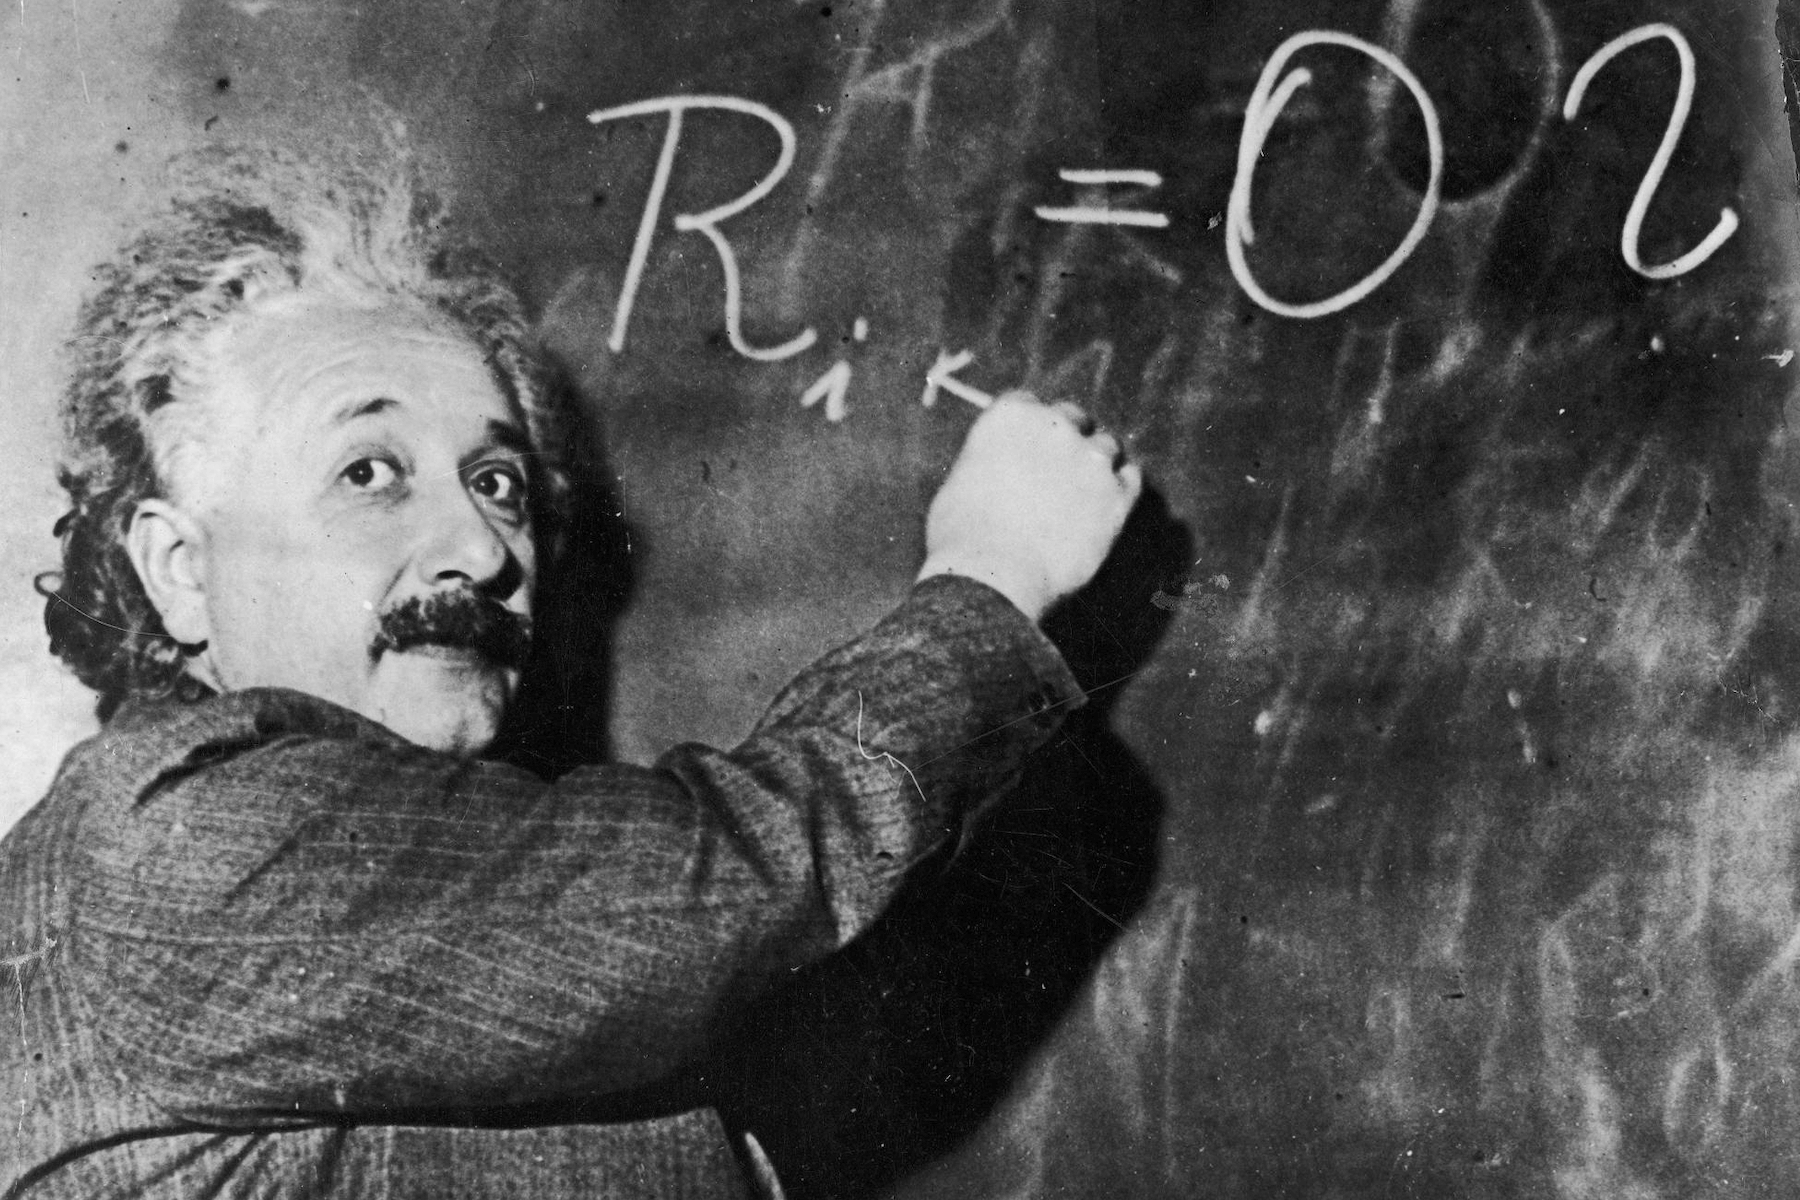 Albert Einstein writing a formula on the board